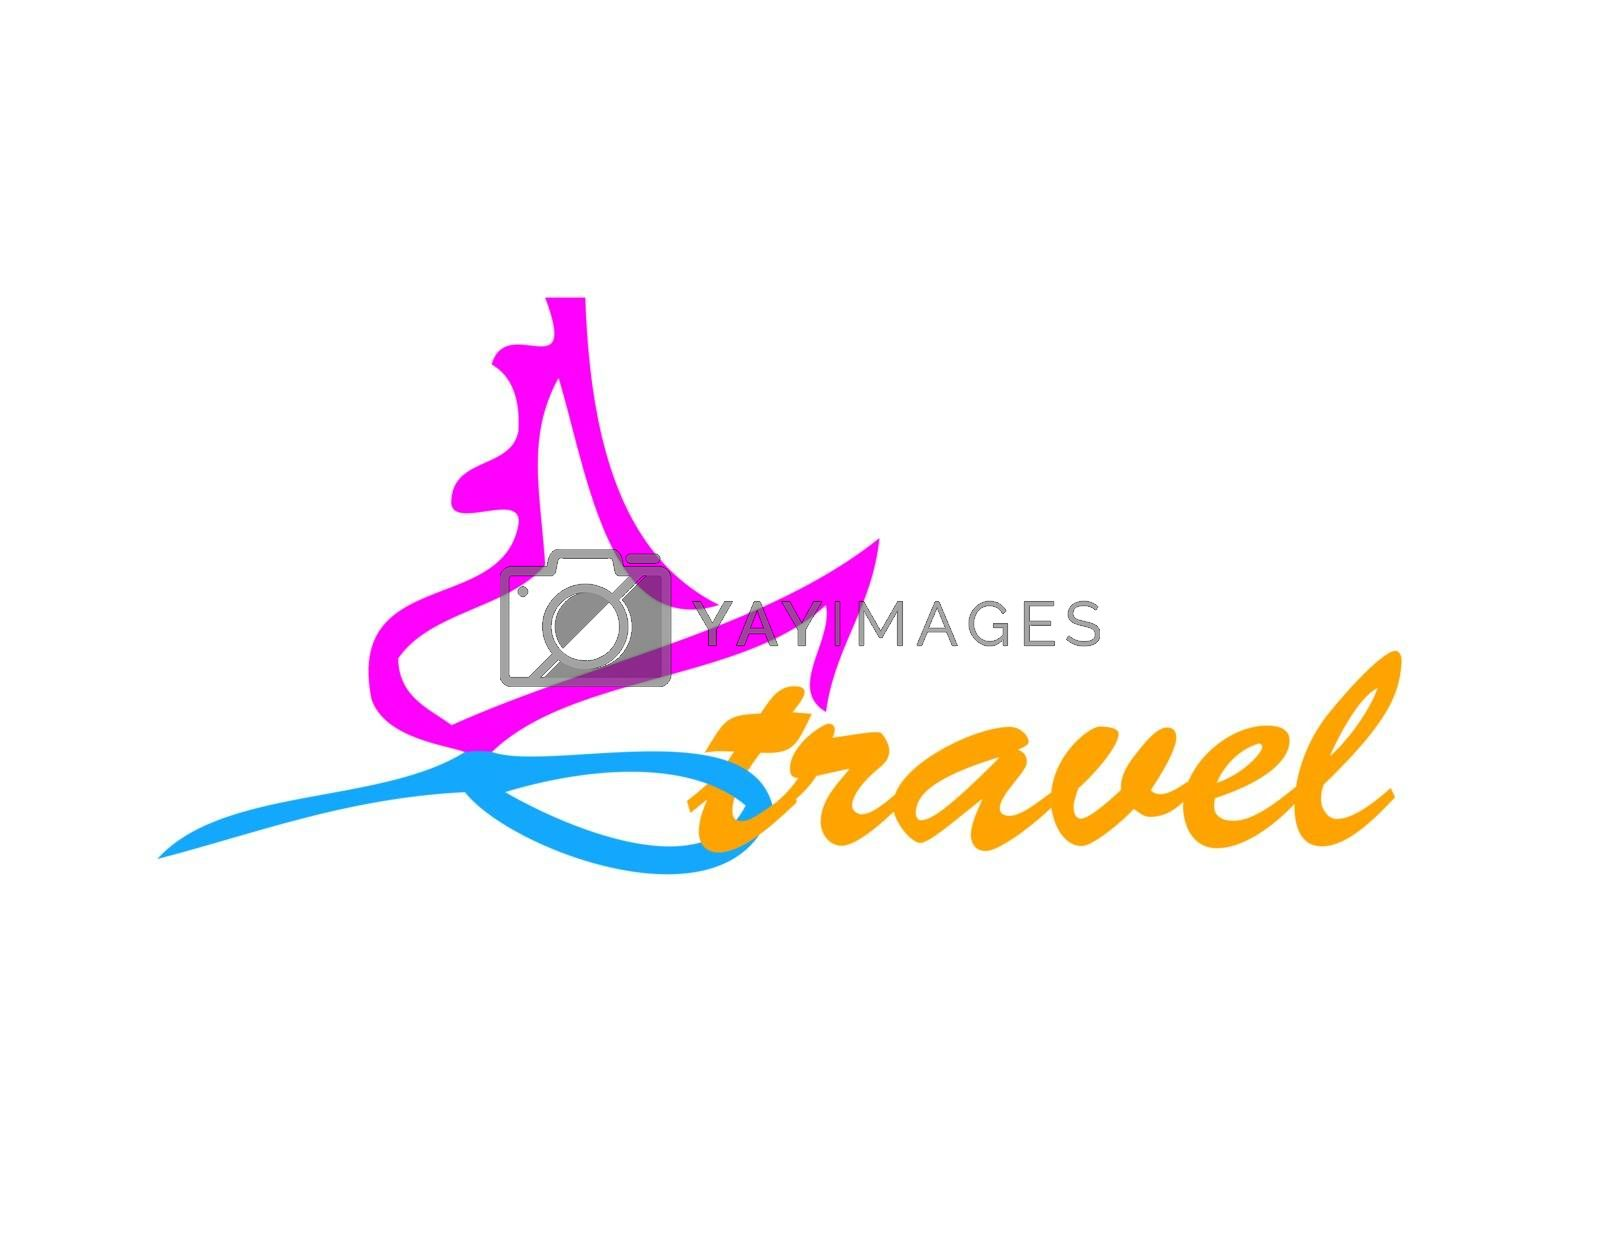 color logo travel with ship and wave